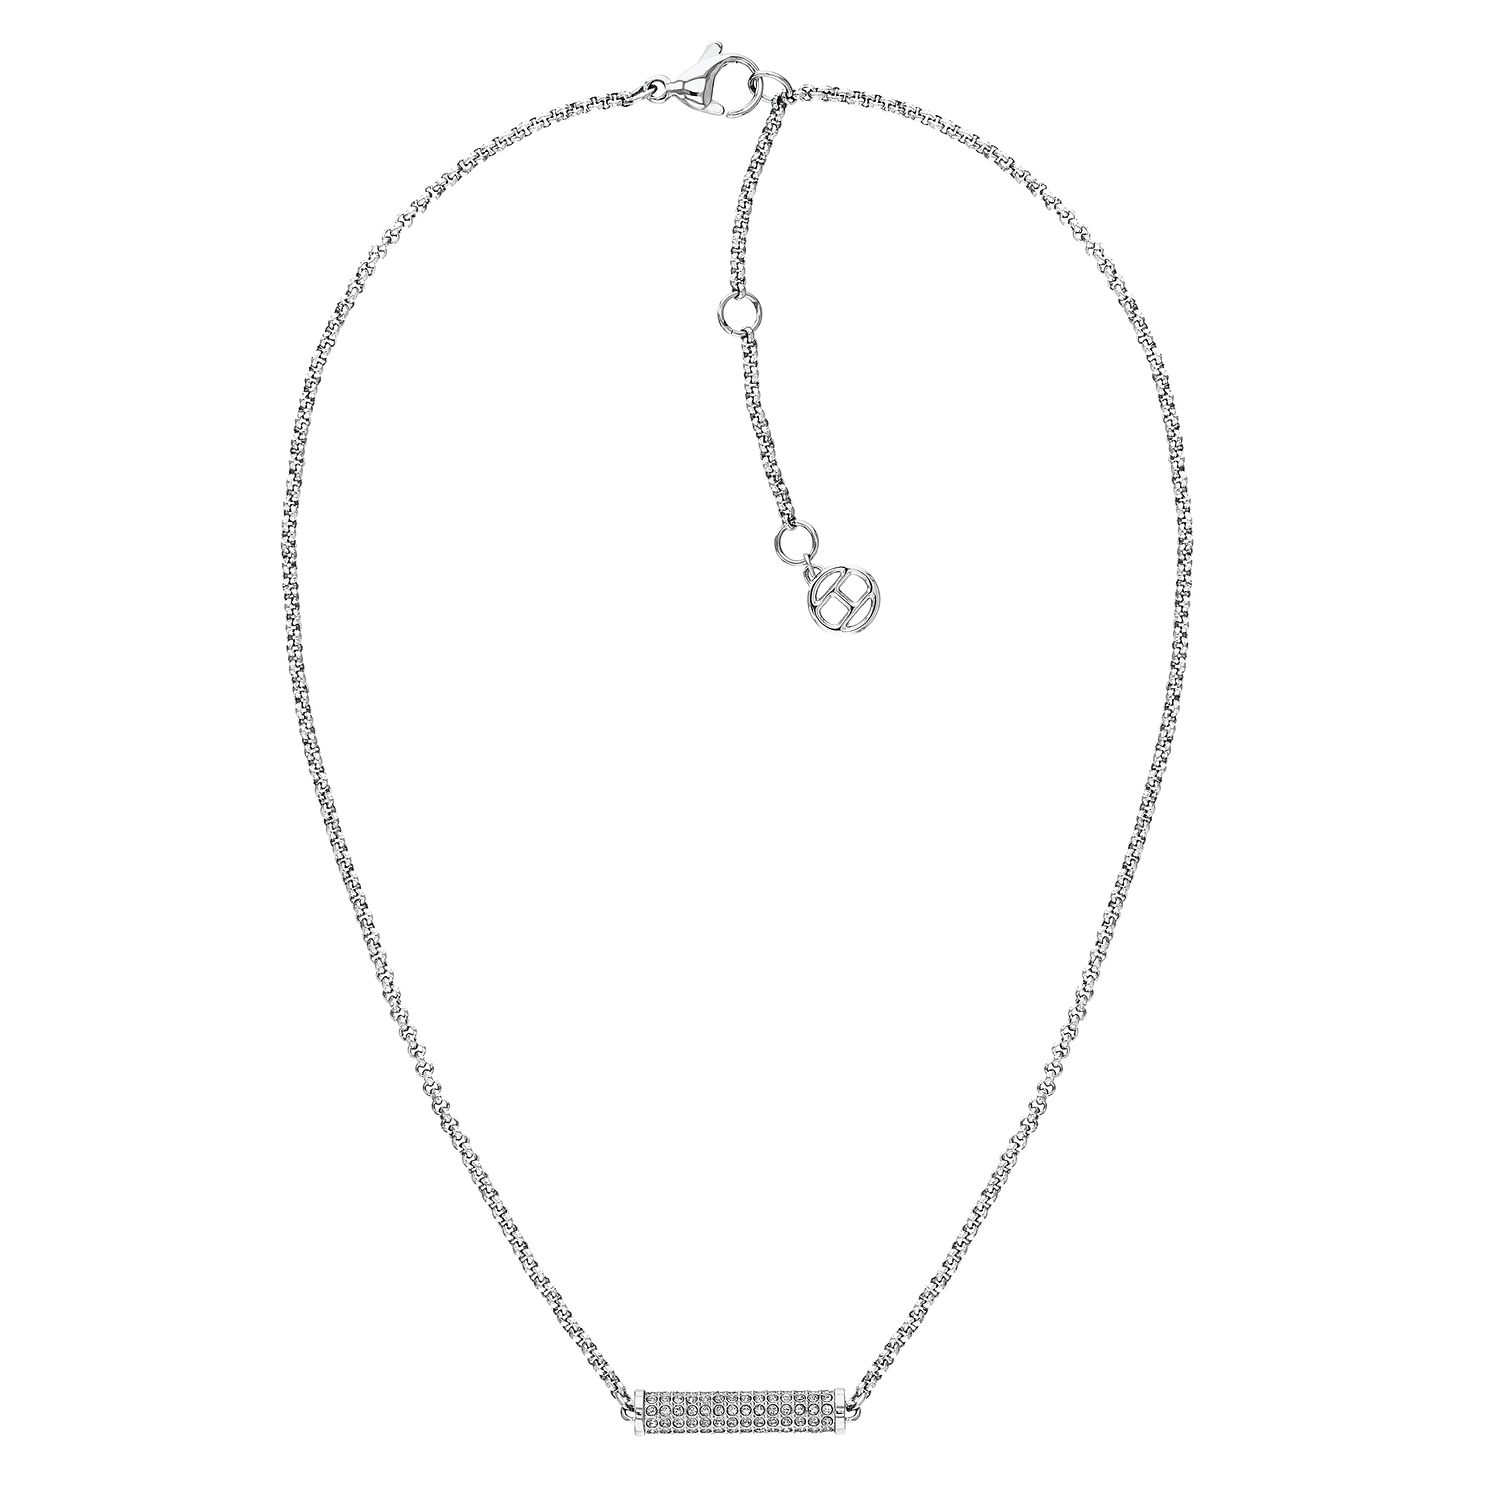 Tommy Hilfiger Silver Tone Crystal Charm Necklace - Product number 3424146